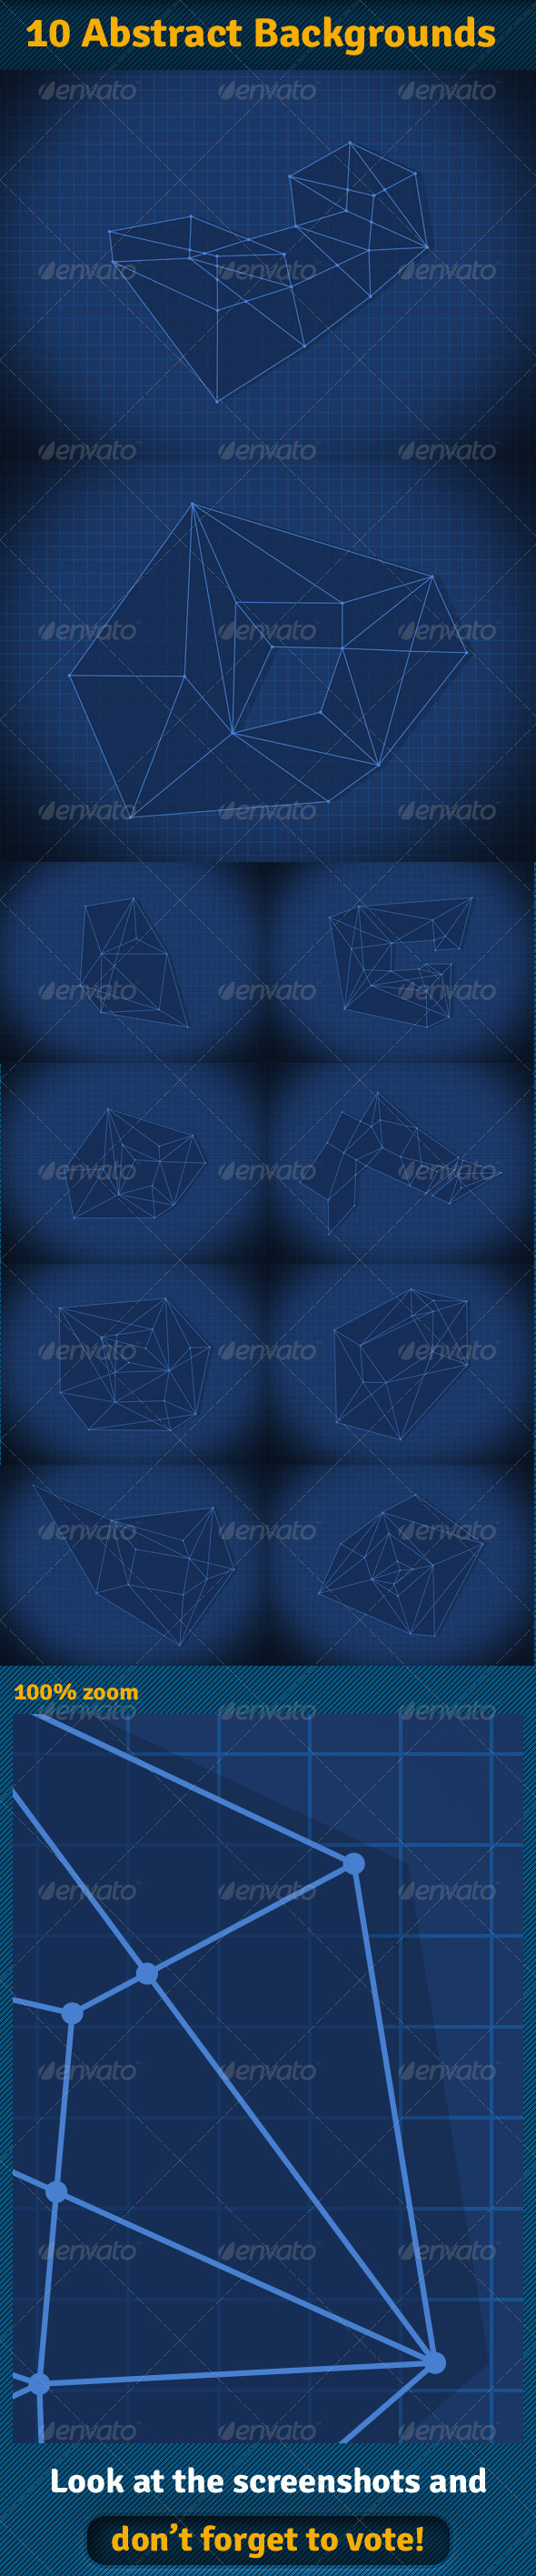 GraphicRiver Abstract Backgrounds 6144896